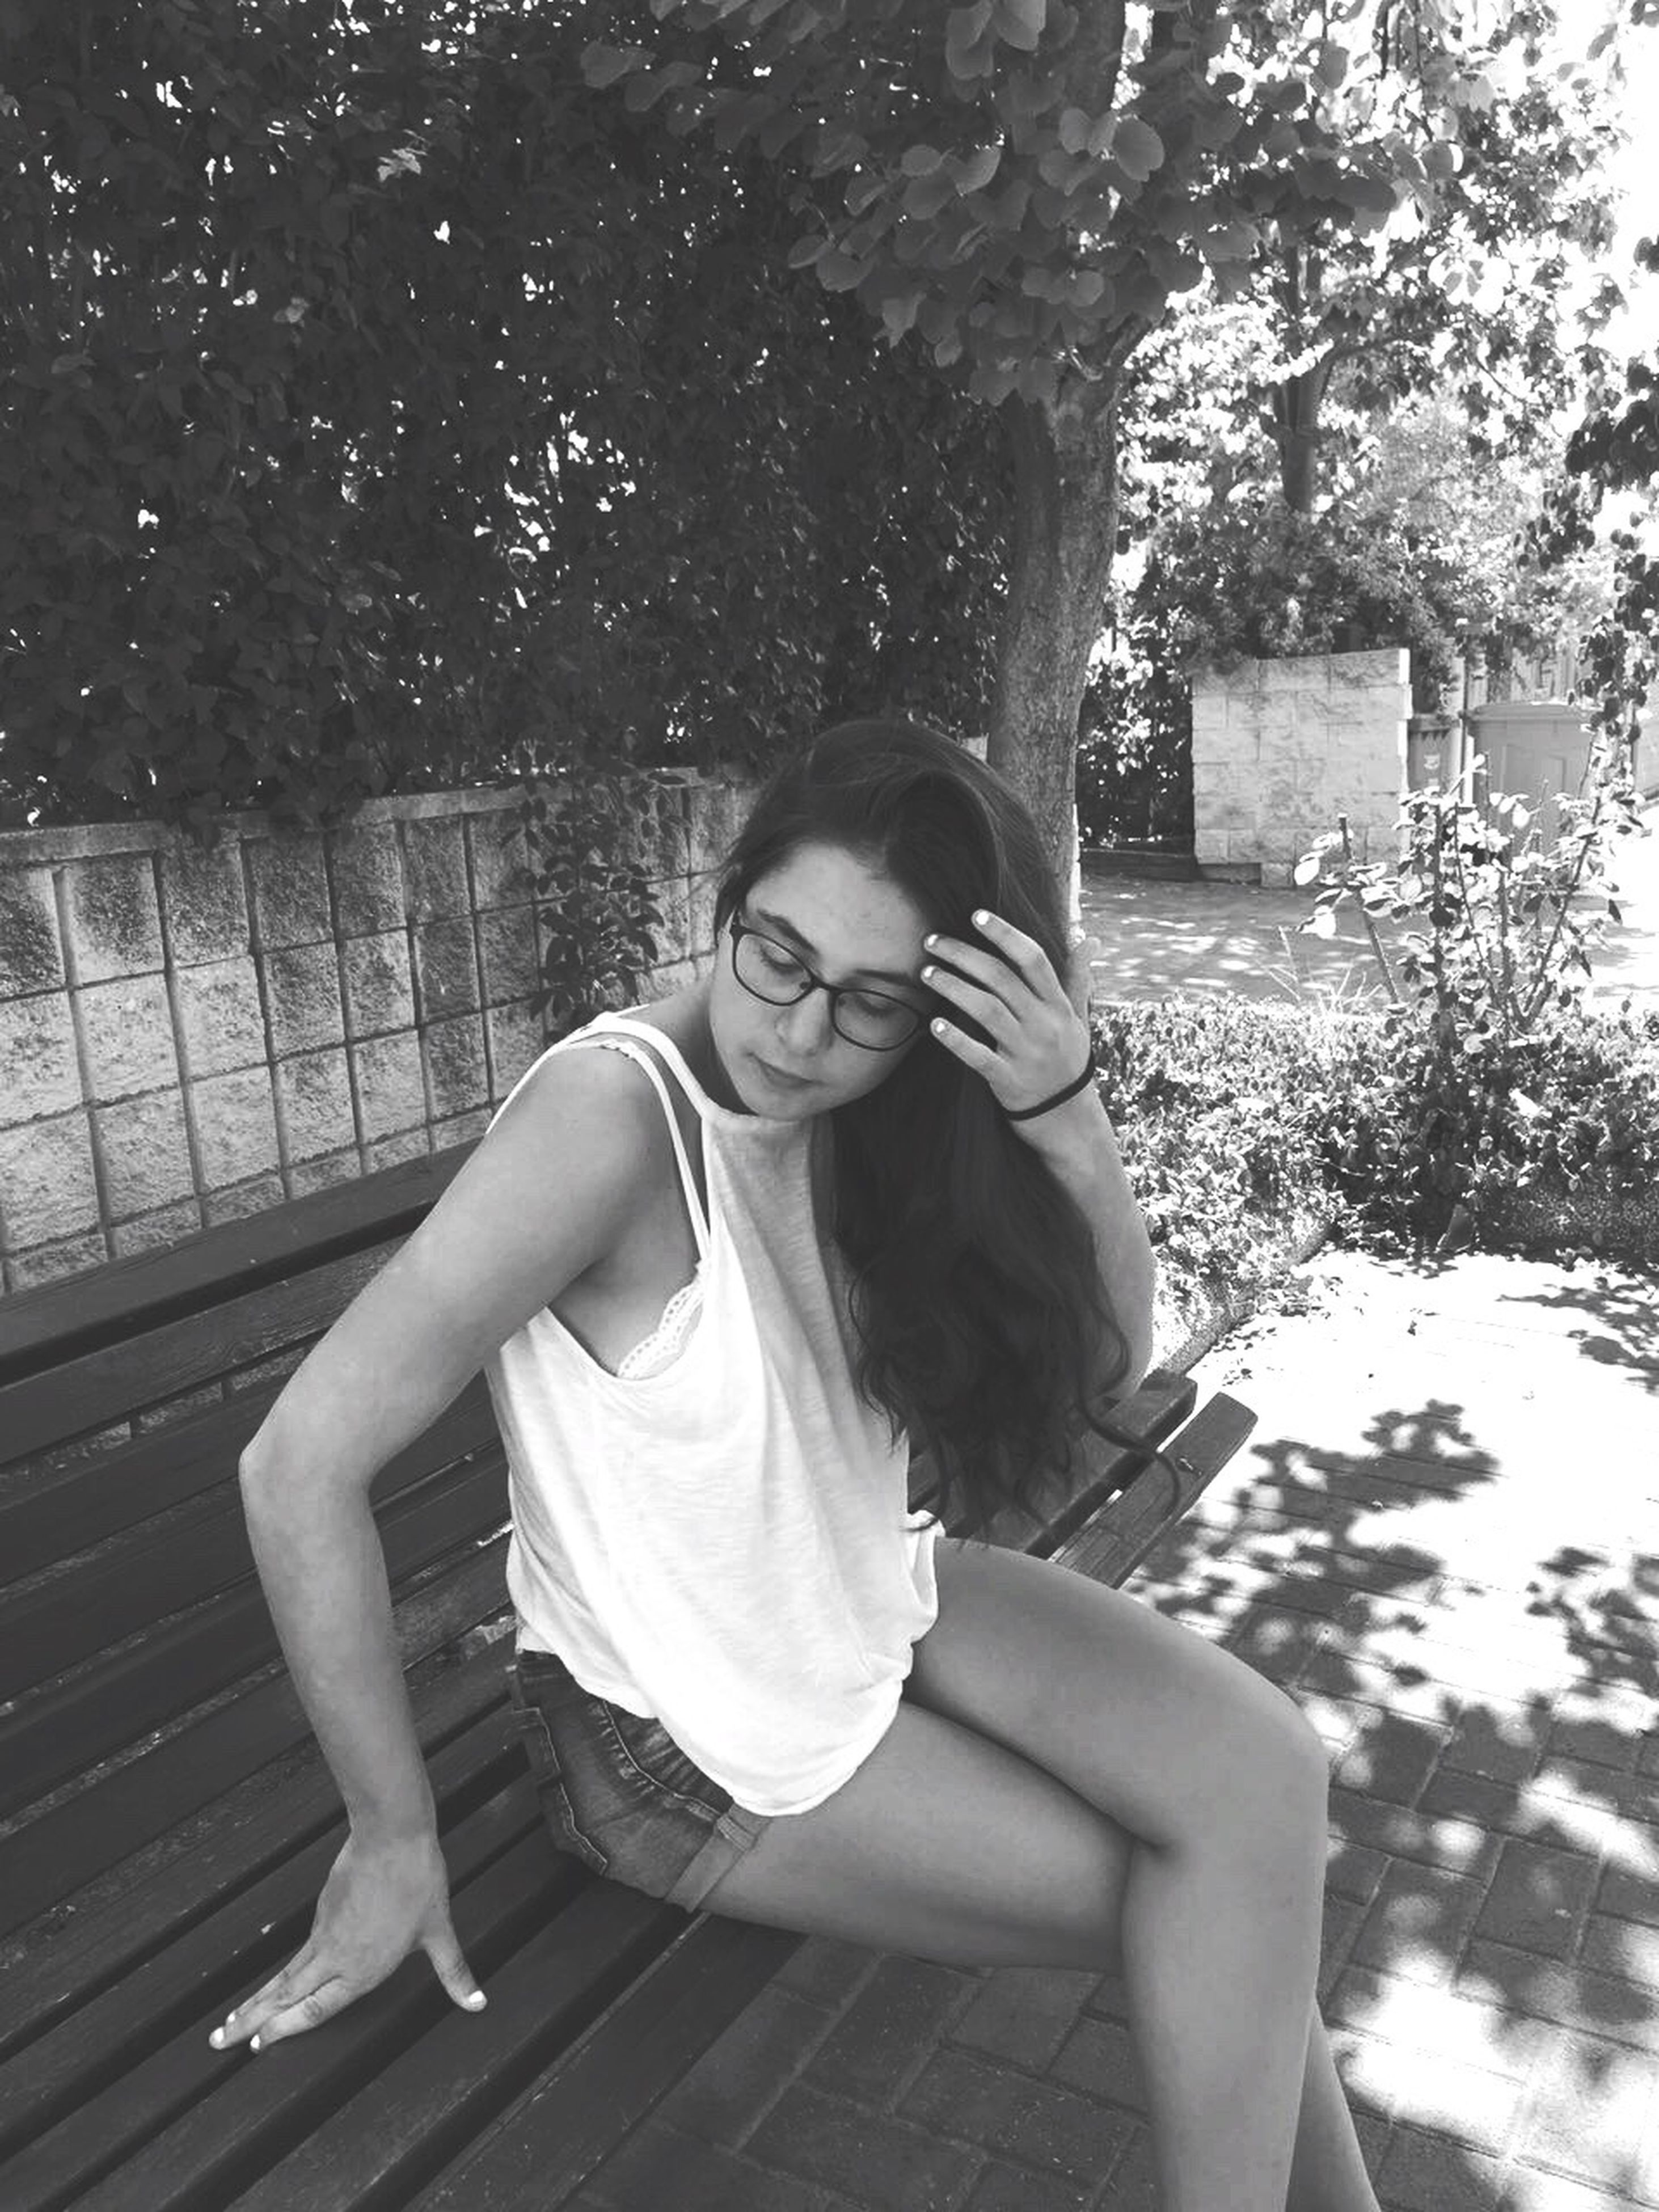 eyeglasses, young adult, portrait, tree, sitting, one woman only, one person, young women, outdoors, people, adults only, day, adult